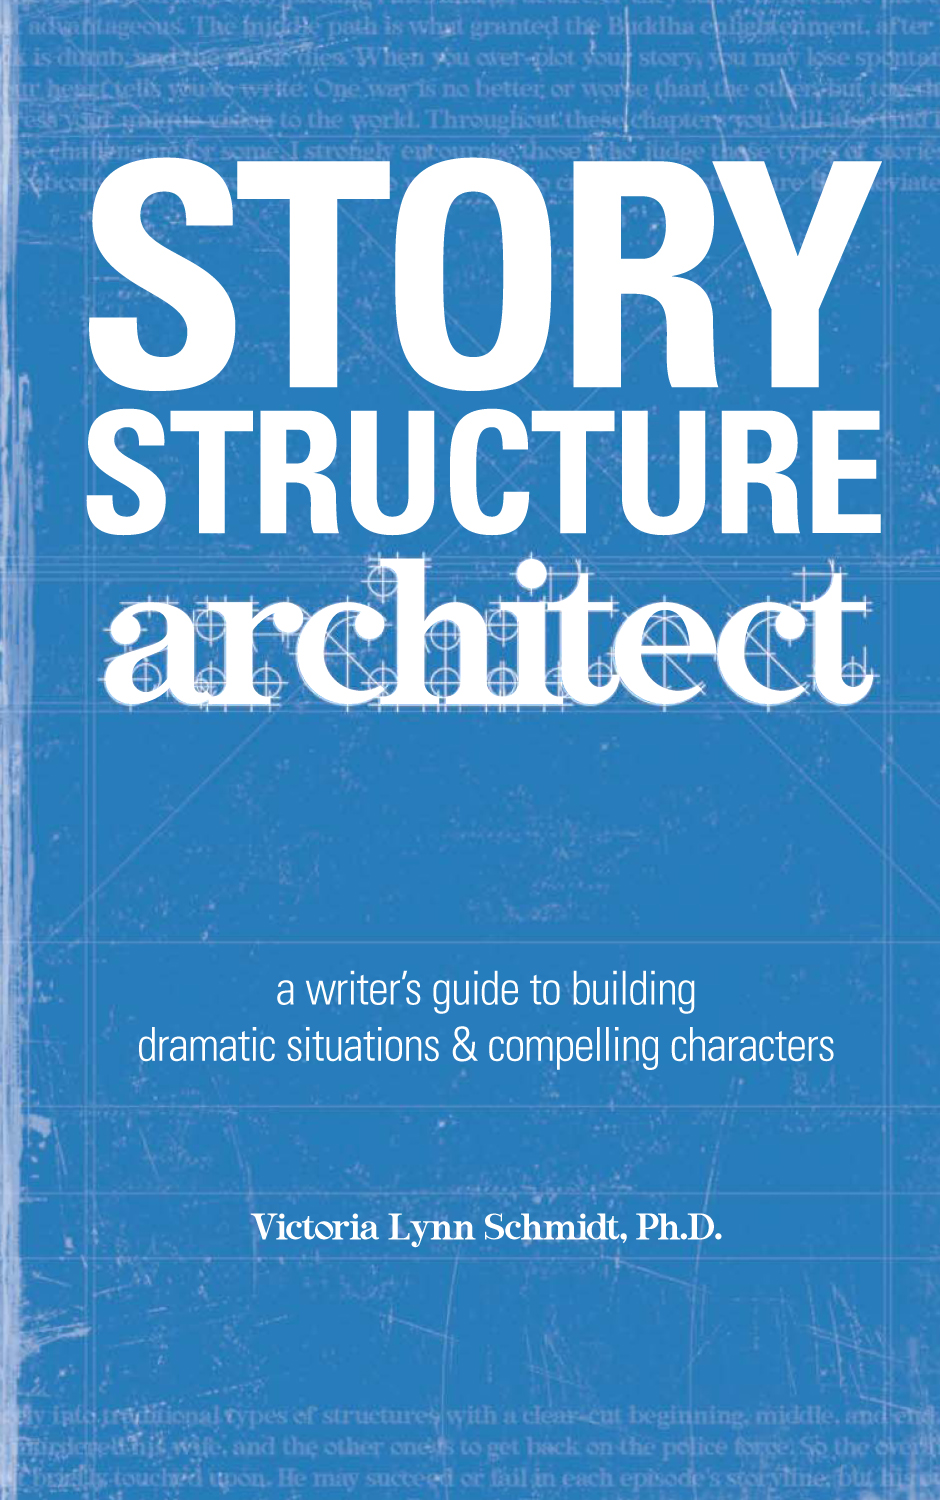 Story Structure Architect By: Victoria Lynn Schmidt